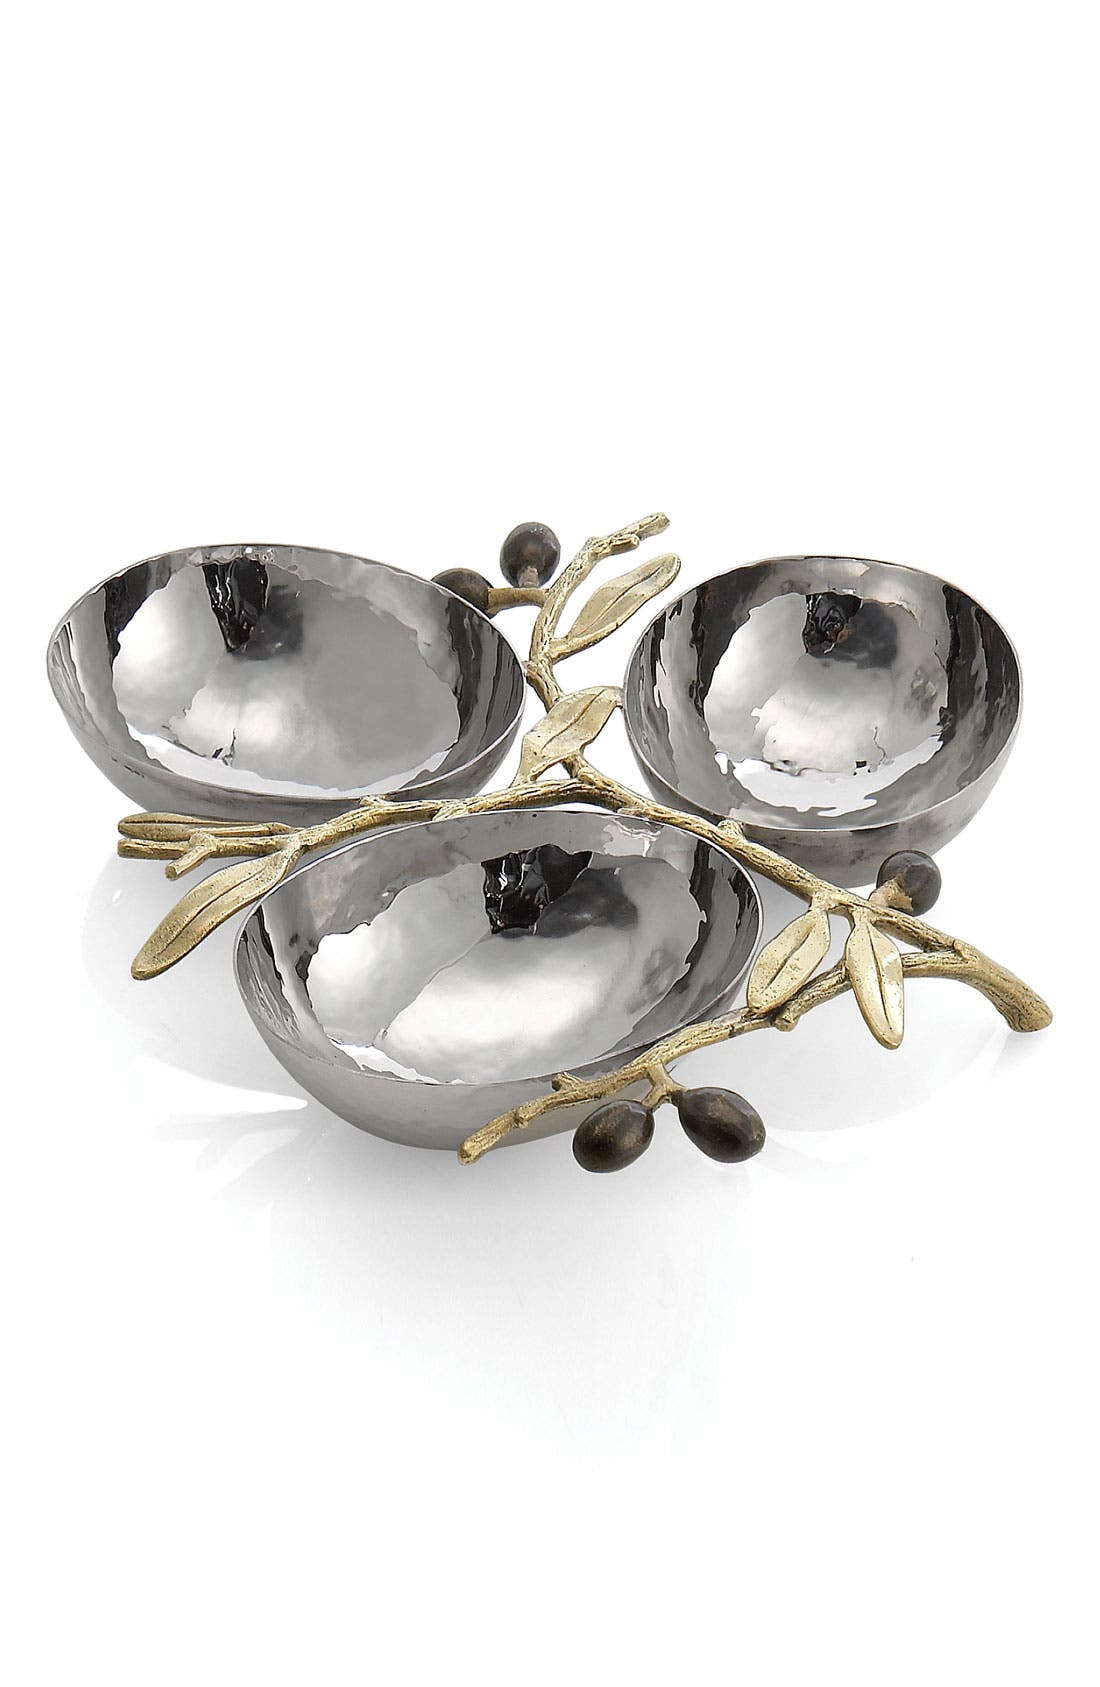 Alternate Image 1 Selected - Michael Aram 'Olive Branch Gold' Triple Dish